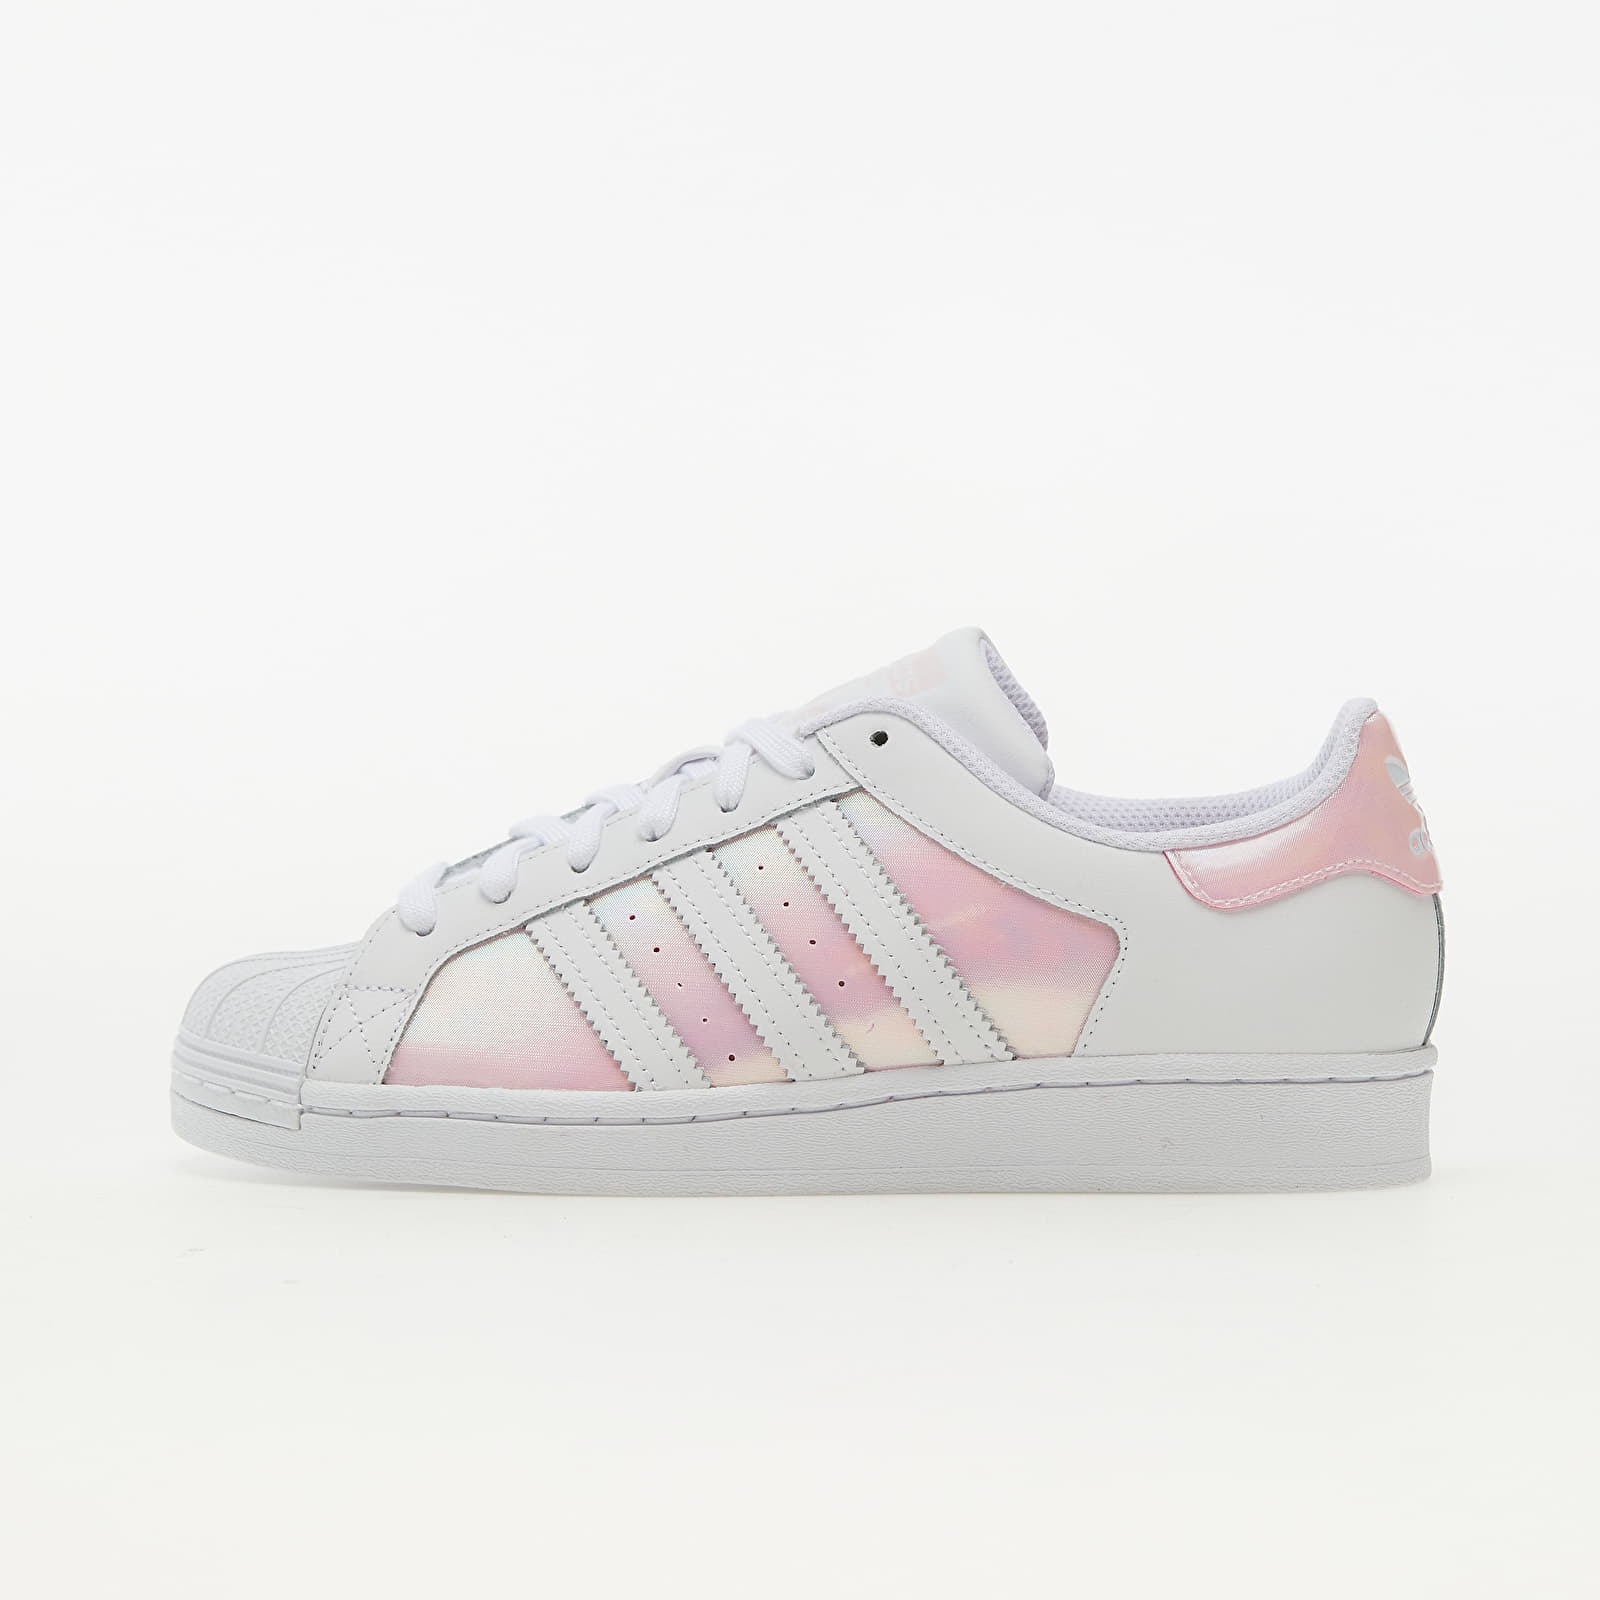 adidas Superstar W Ftw White/ Ftw White/ Clear Pink EUR 38